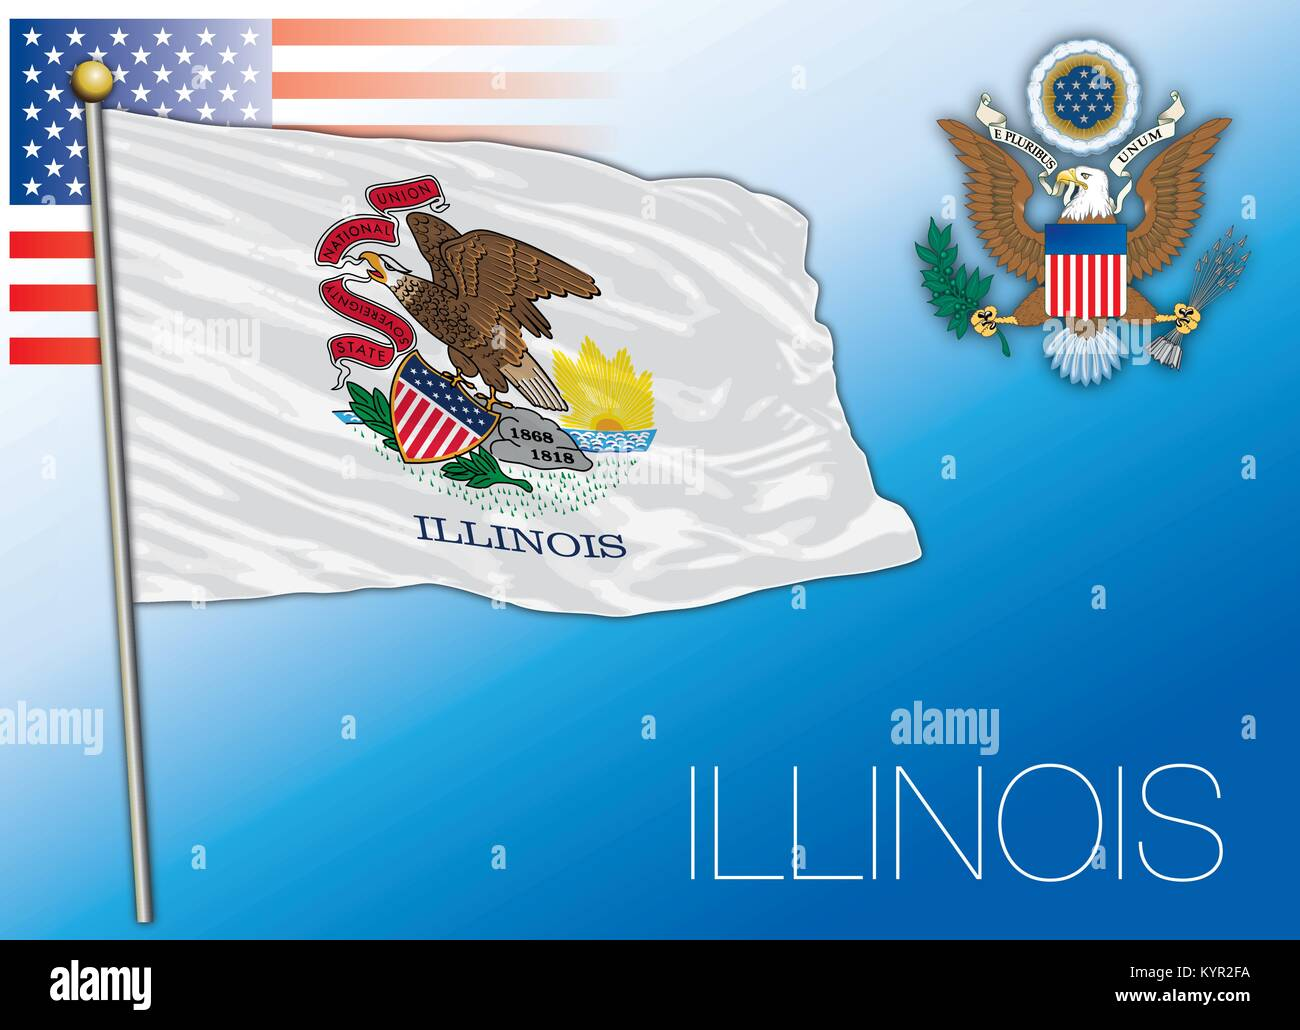 Illinois federal state flag, United States - Stock Vector